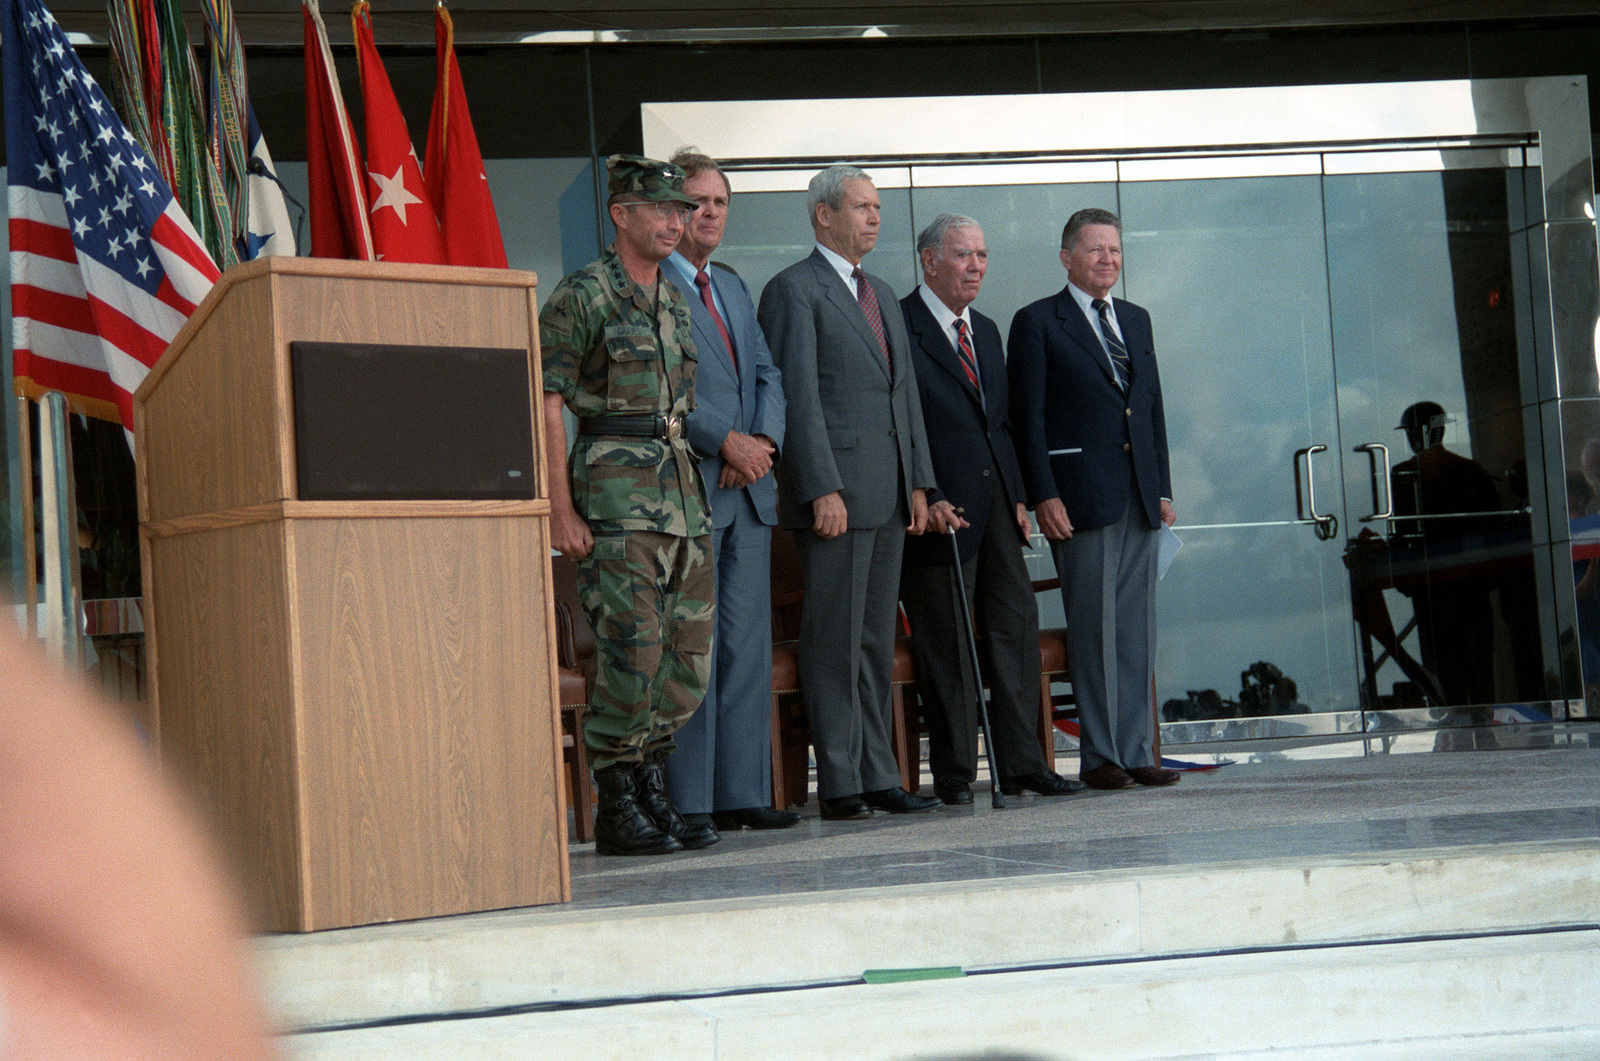 At the dedication of the new III Corps and Fort Hood headquarters building, named after former Corps Commander James A. Van Fleet, left to right: Lieutenant General Richard G. Graves, Commanding General; Representative Marvin Leath of Texas; Secretary of the Army Michael P.W. Stone; retired Major General (MGEN) Van Fleet and his son-in-law, retired MGEN Joseph A. McChristian, former commander of the 2nd Armored Division